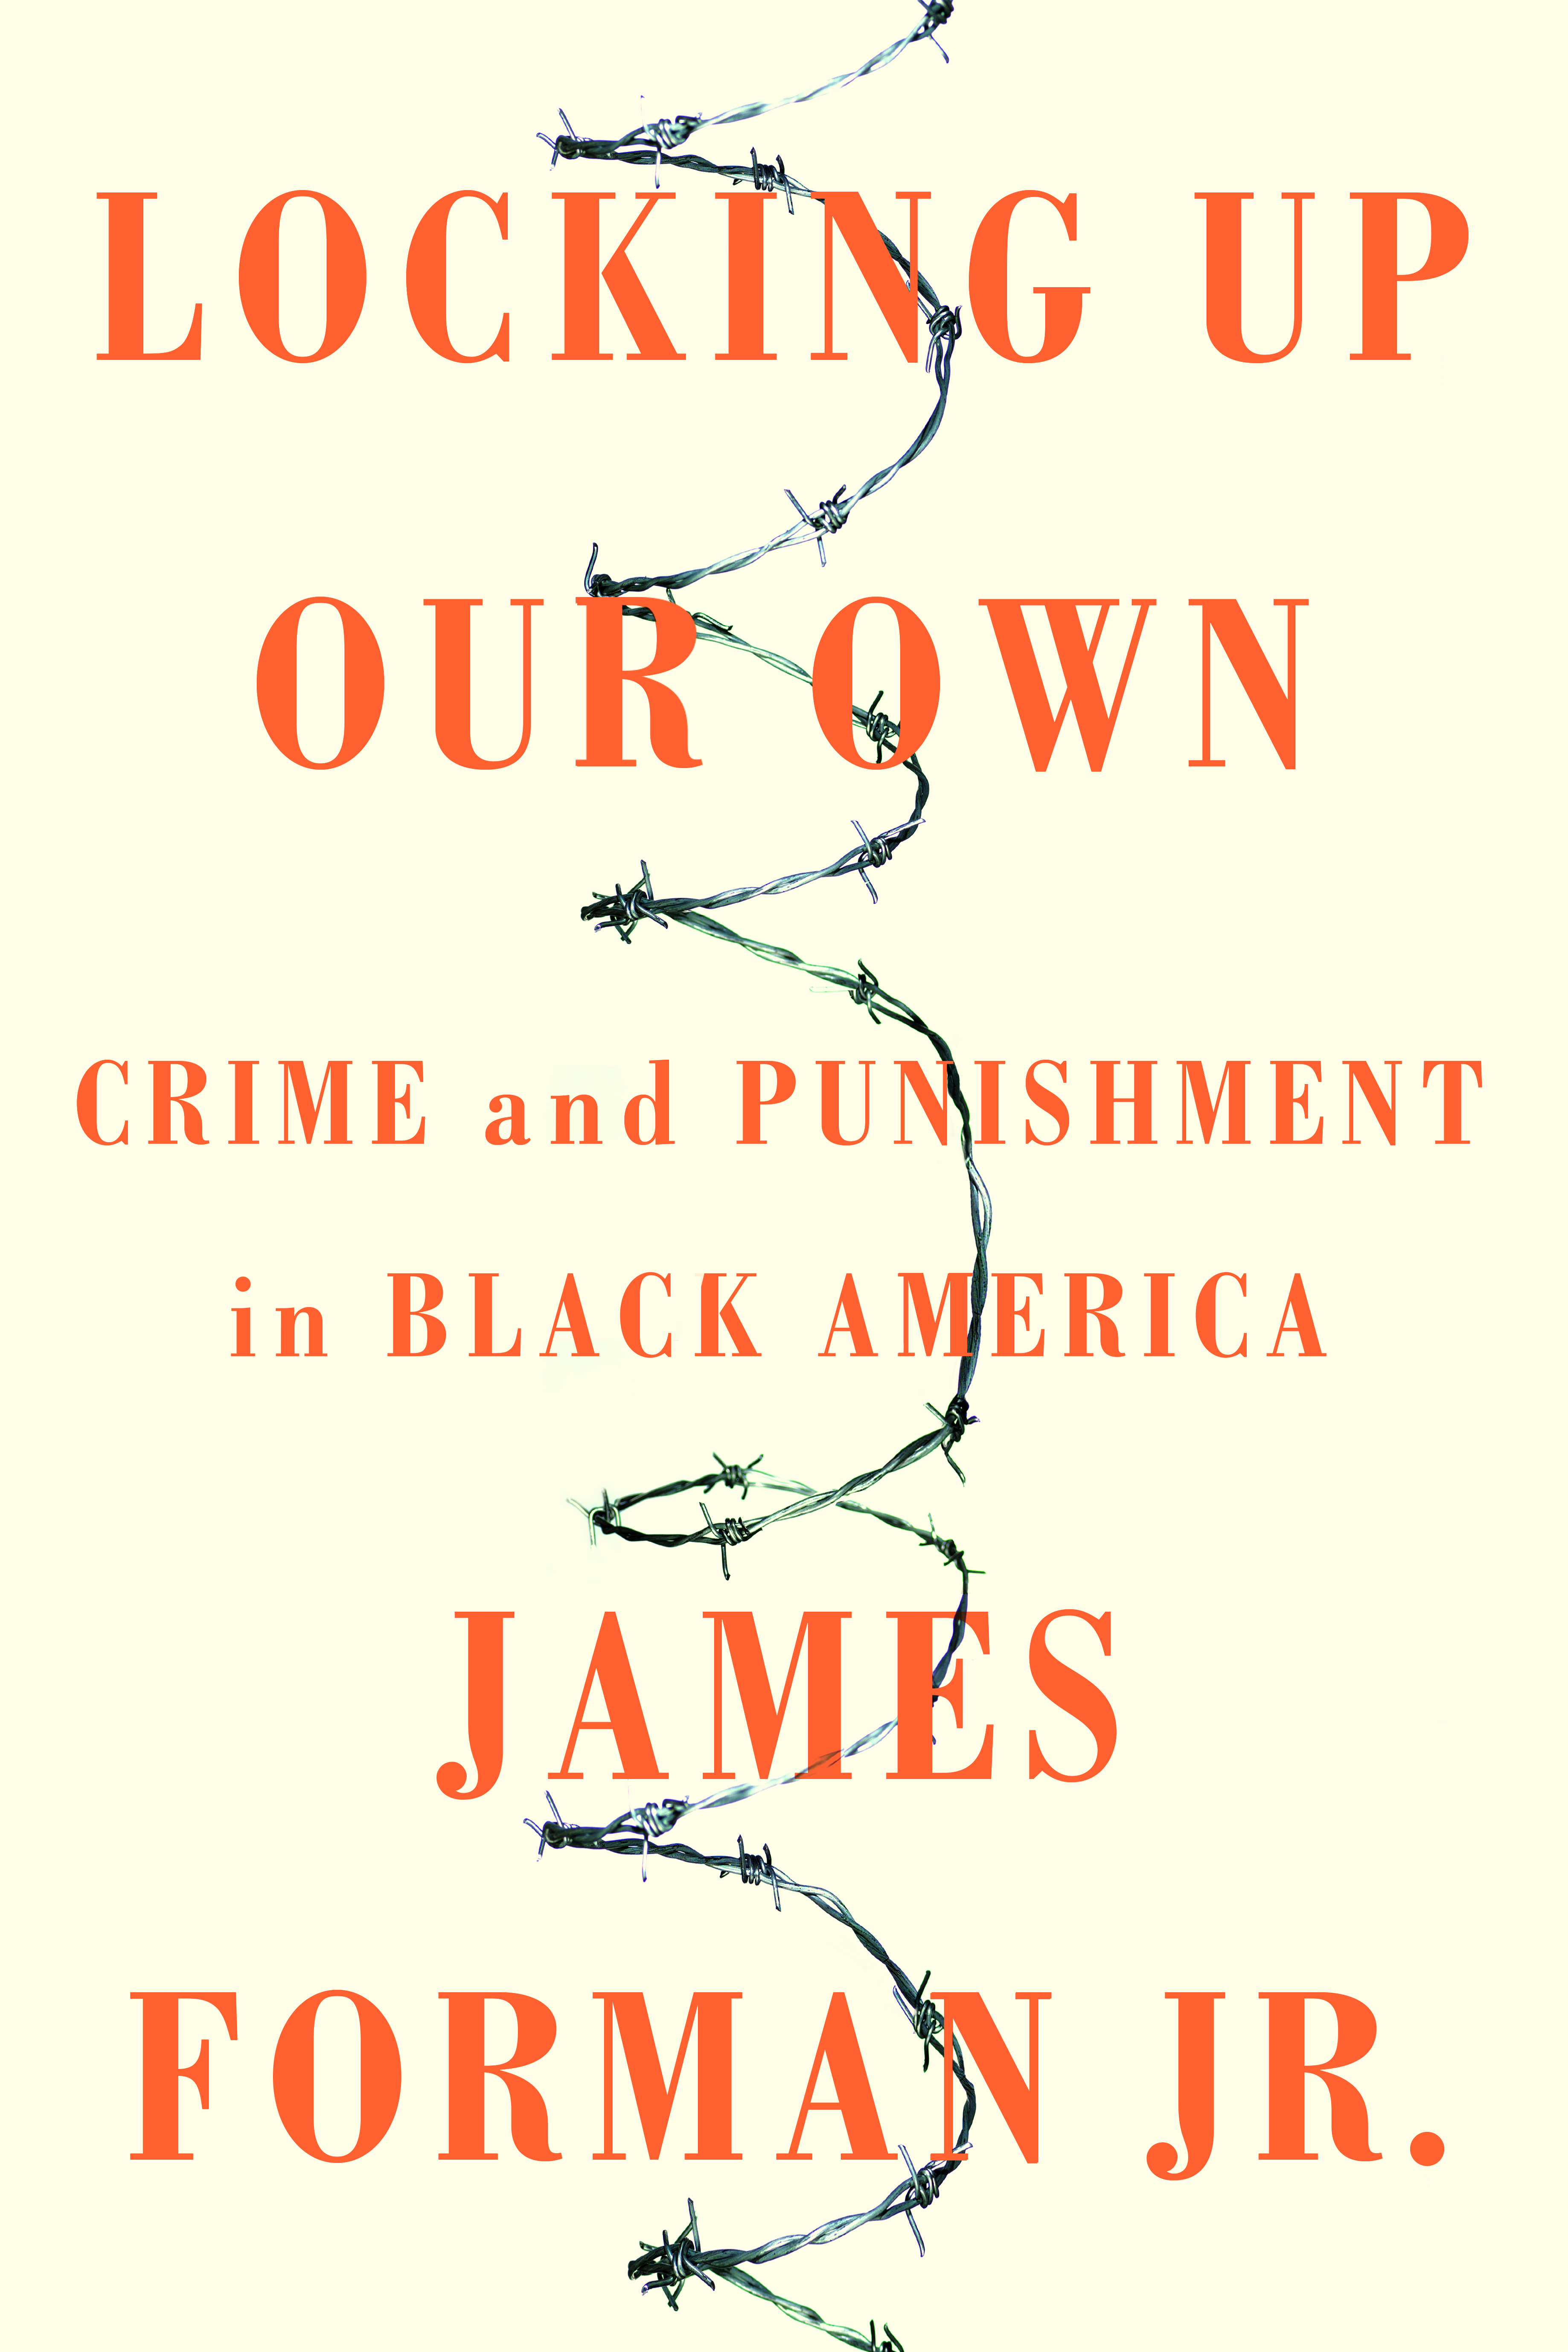 Locking Up Our Own Crime and Punishment in Black America